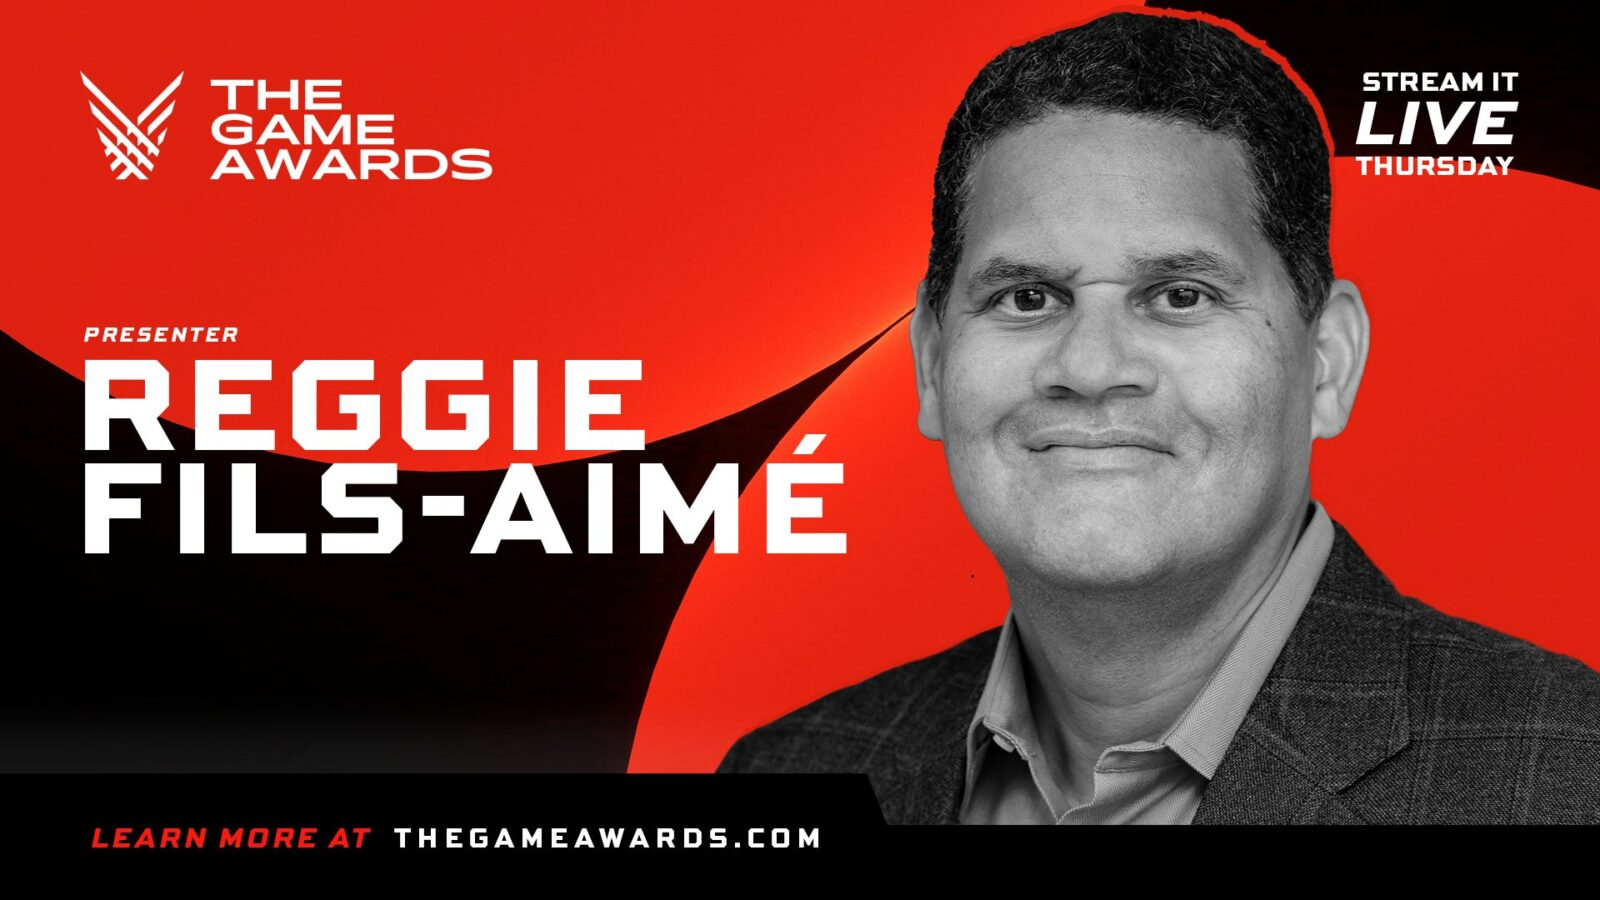 Reggie Fils-Aime será apresentador no The Game Awards 2020